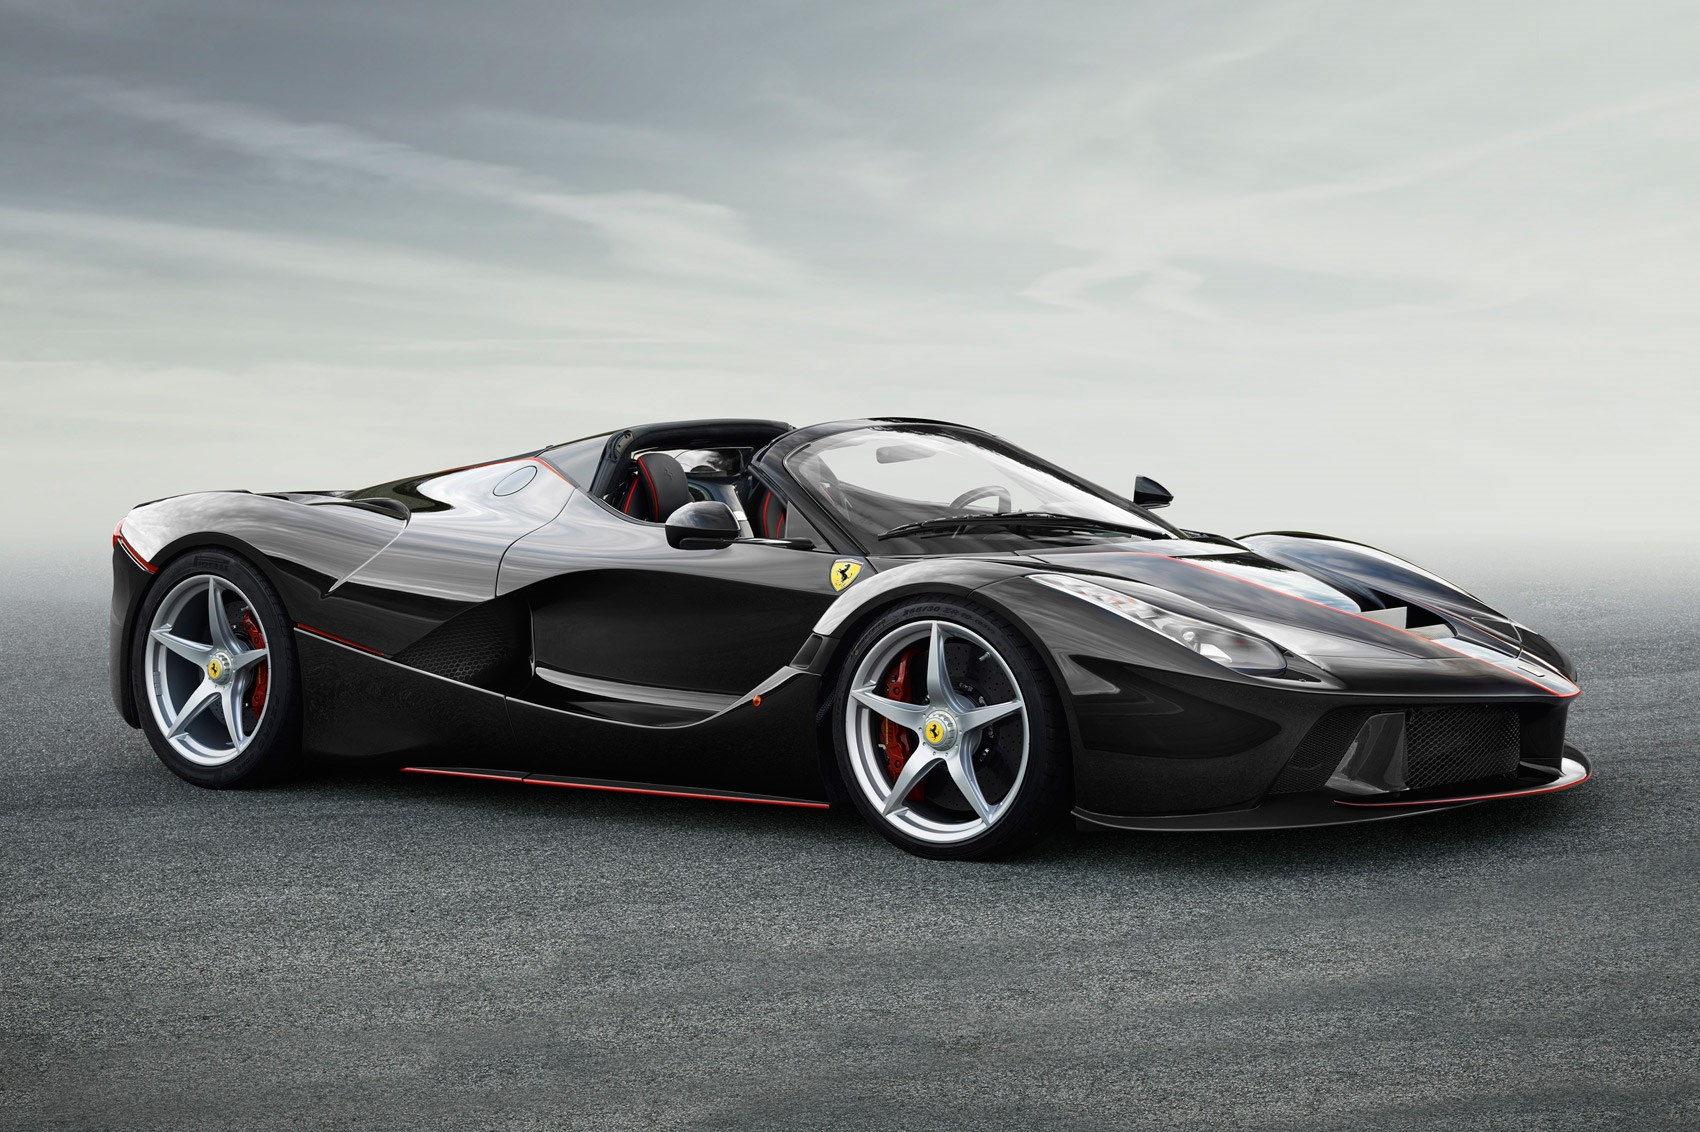 laferrari aperta at paris 2016: details and pictures of the open